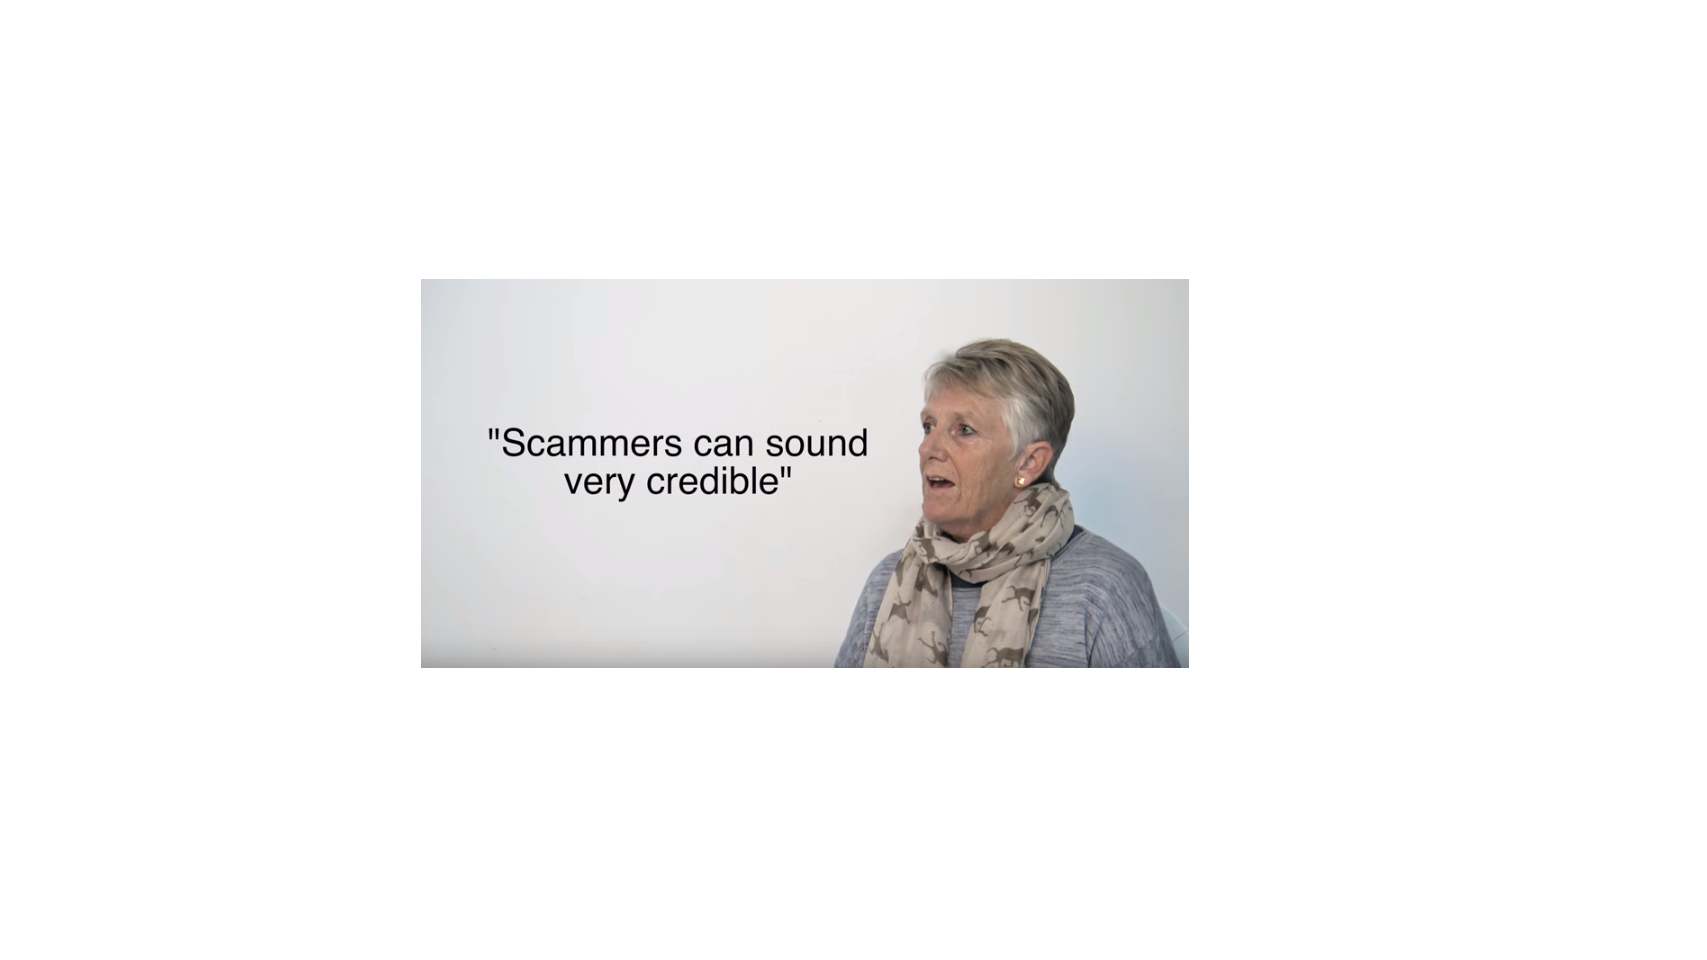 Scammers can sound very credible